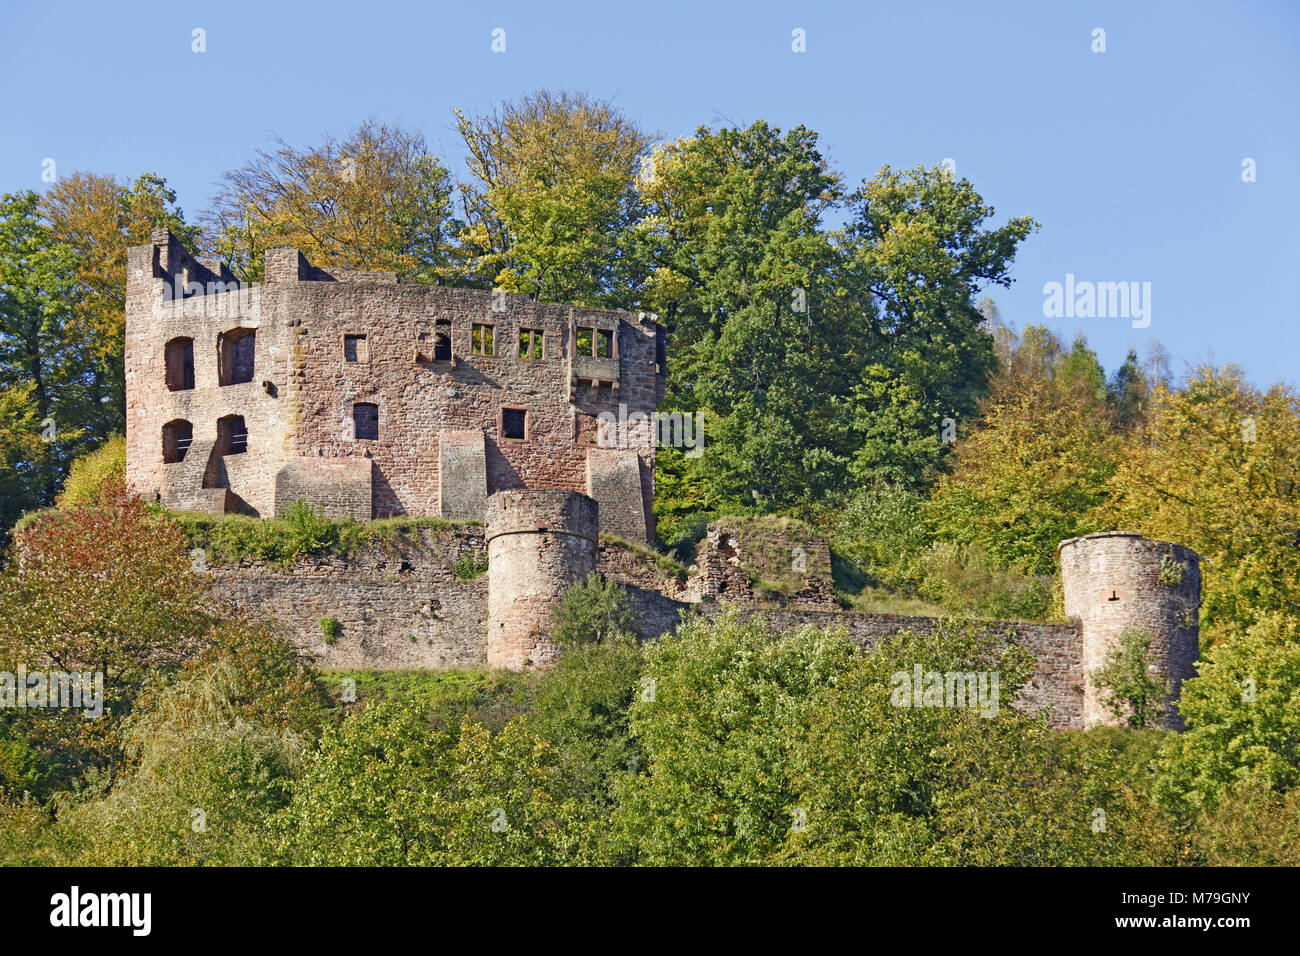 Germany, Hessen, Beerfelden, district Gammelsbach, first mentioned 772, castle ruin Freienstein, 12. century, - Stock Image